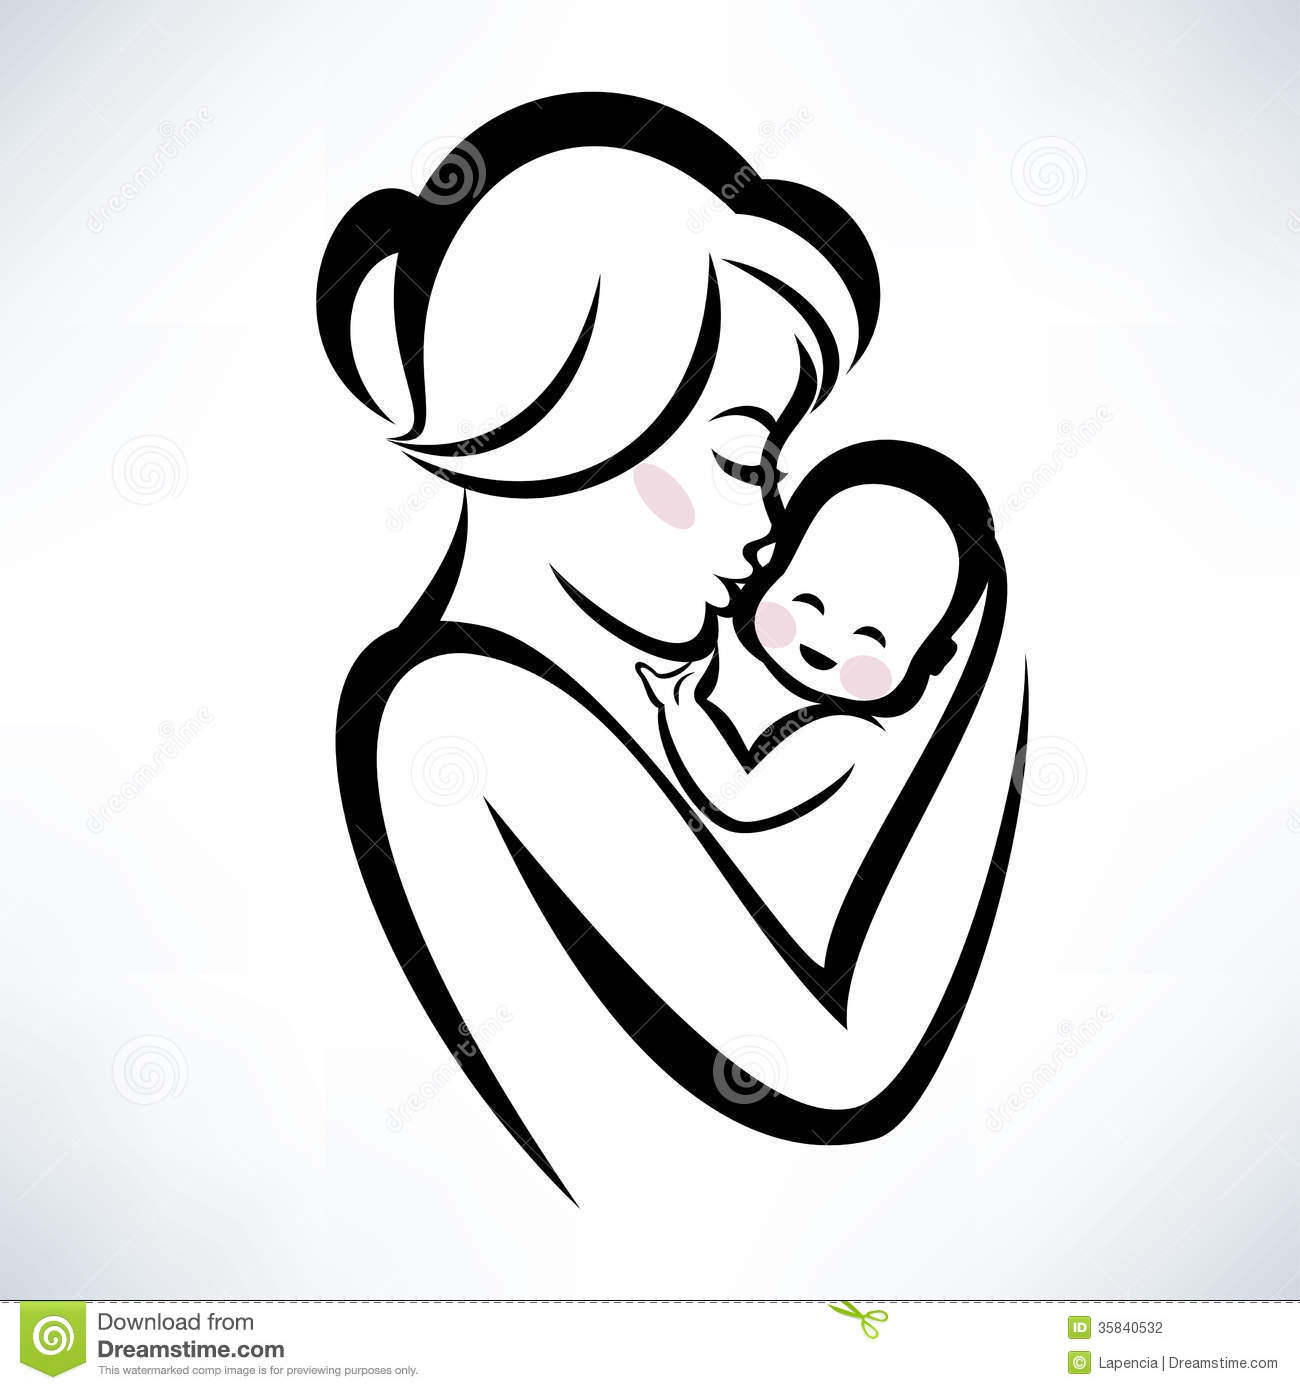 Mom and baby clipart.